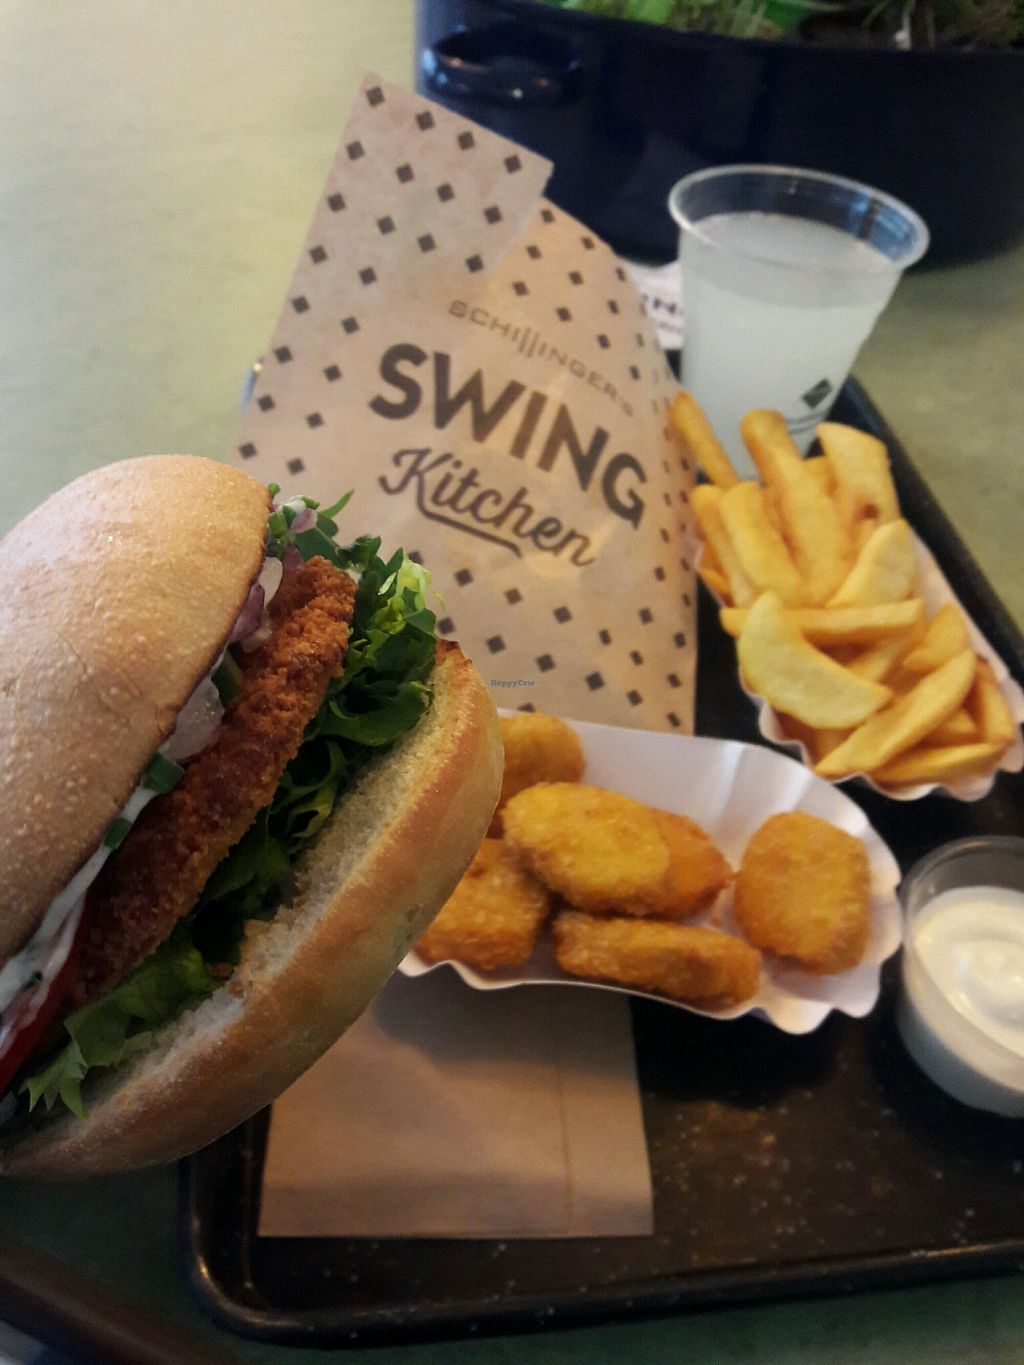 "Photo of Swing Kitchen - Operngasse  by <a href=""/members/profile/DominicPaul"">DominicPaul</a> <br/>Vienna Burger, vegan nuggets, Vienna dipping sauce and fries... the lemonade was good.  <br/> December 18, 2017  - <a href='/contact/abuse/image/66158/336849'>Report</a>"